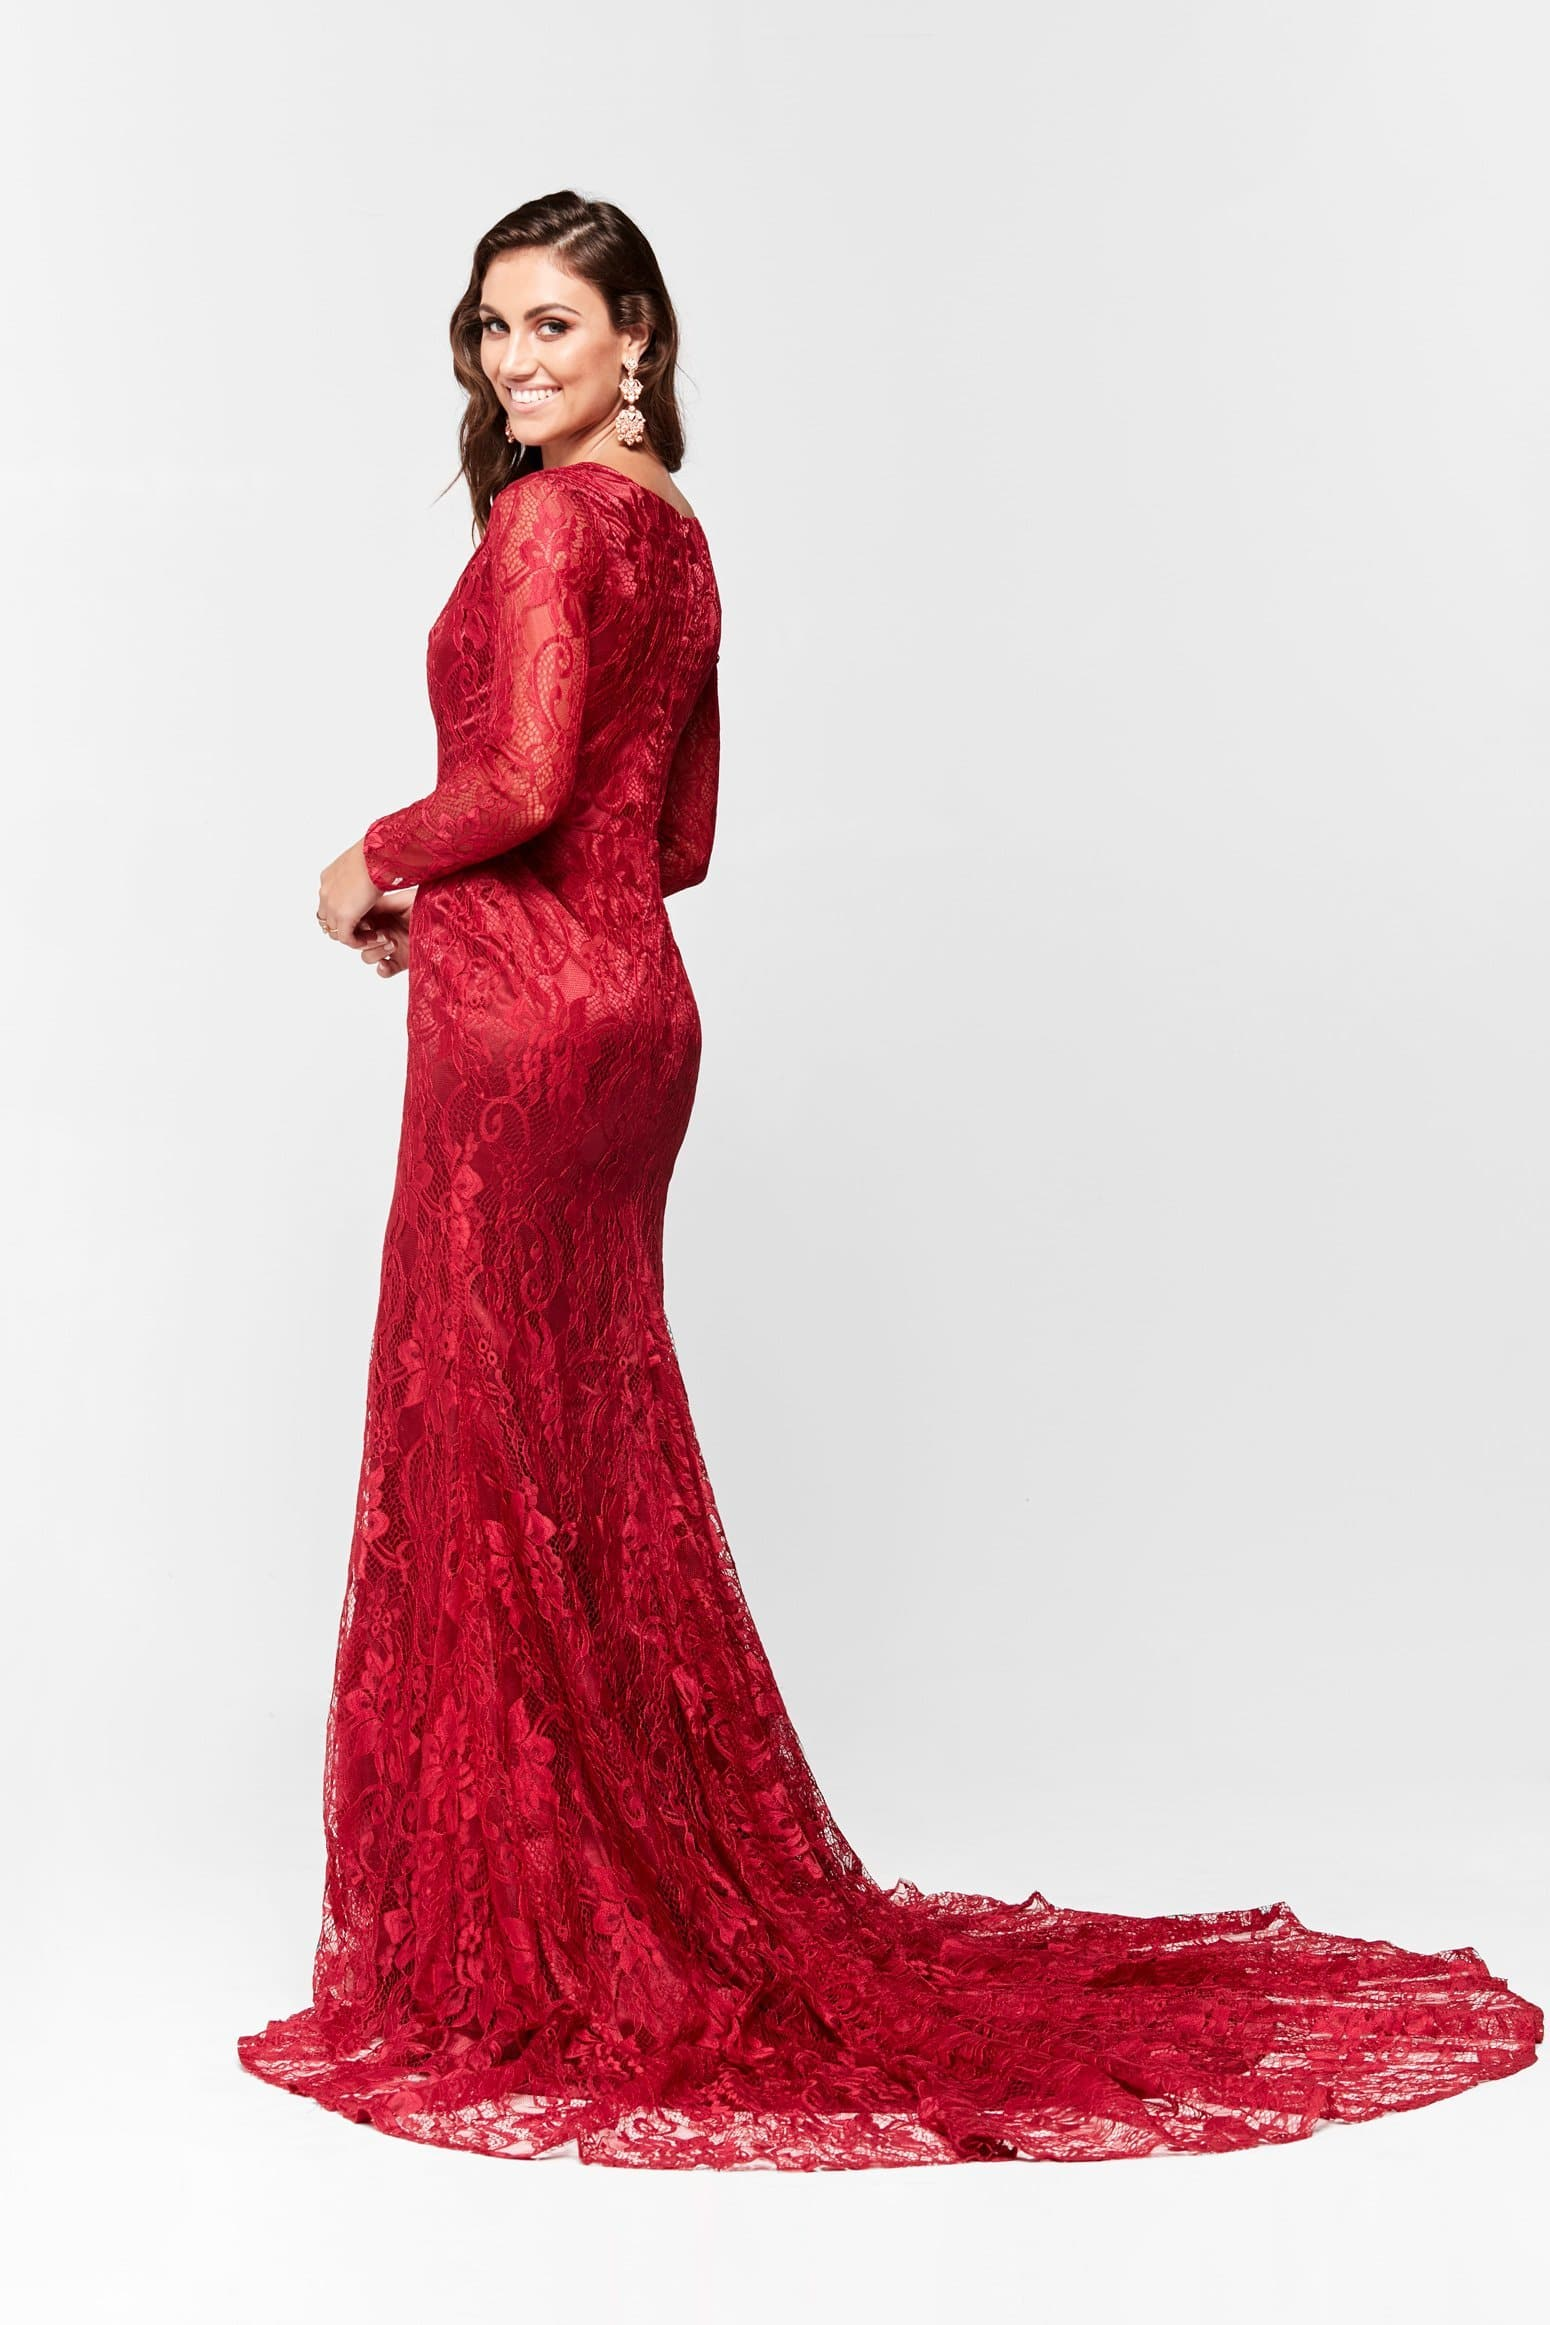 A&N Renee Long Sleeve Lace Gown - Deep Red